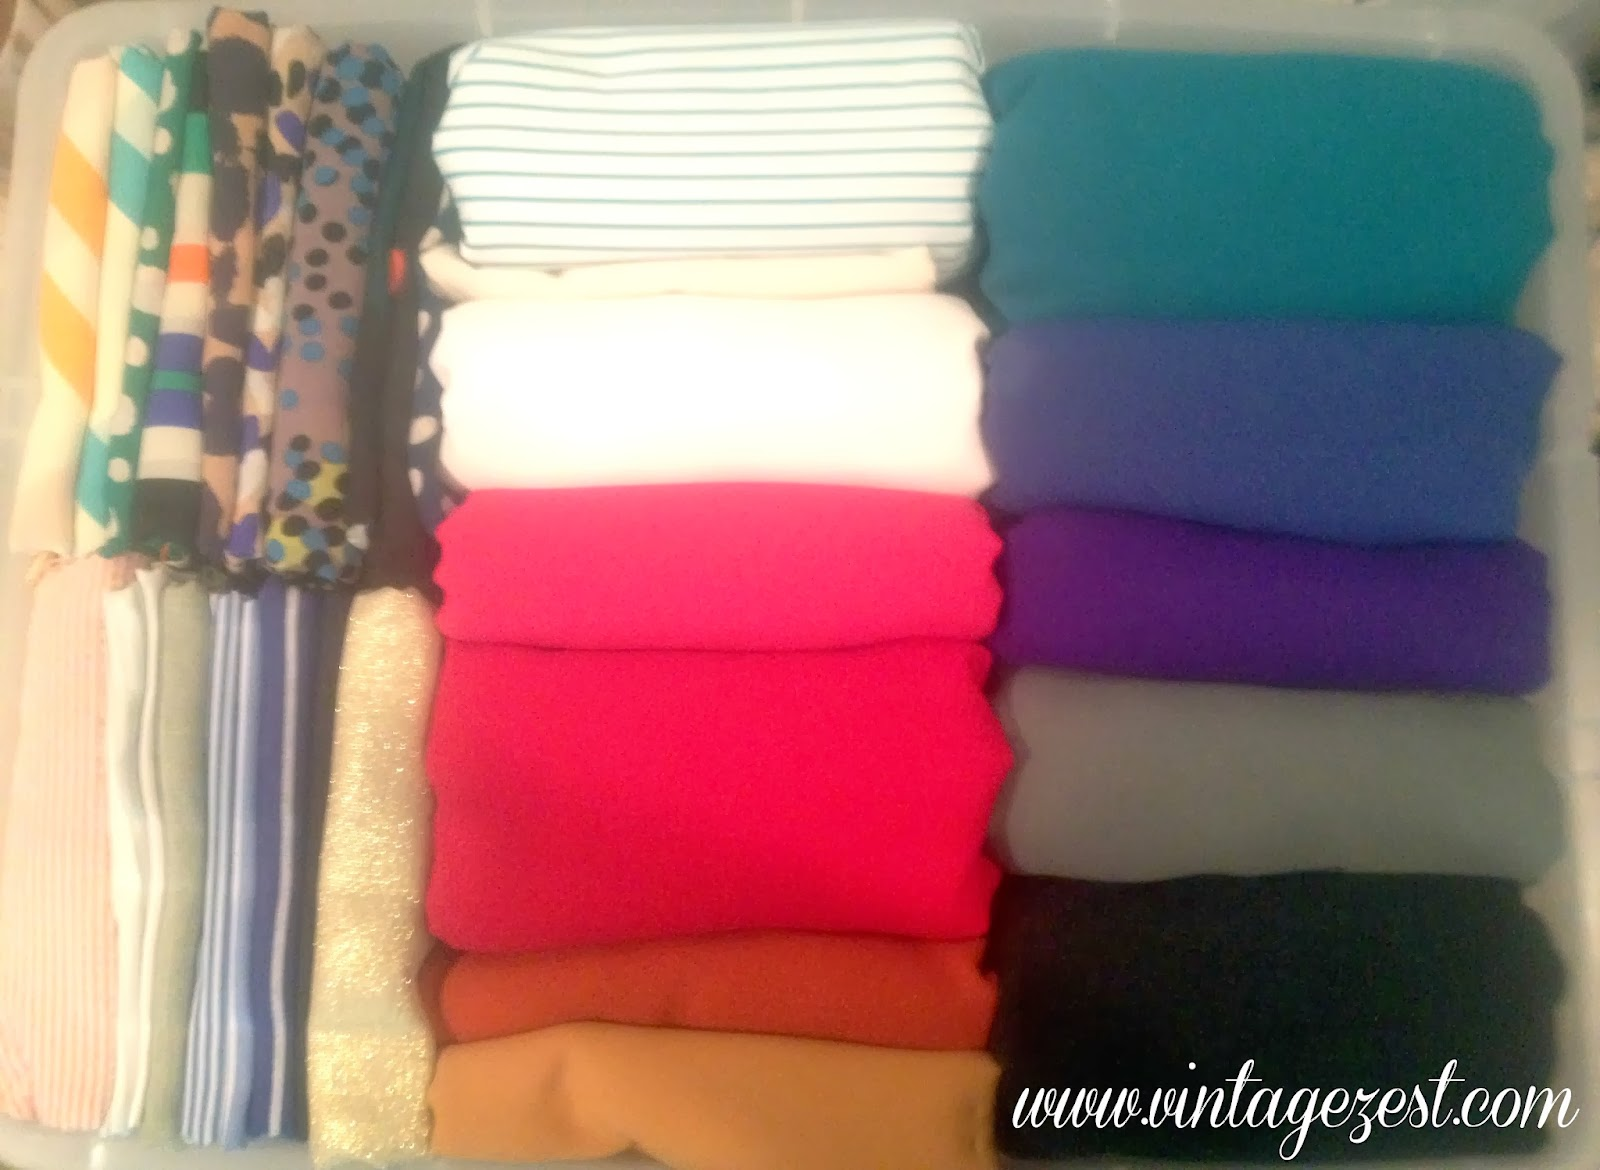 Organizing and Folding Fabric on Diane's Vintage Zest!